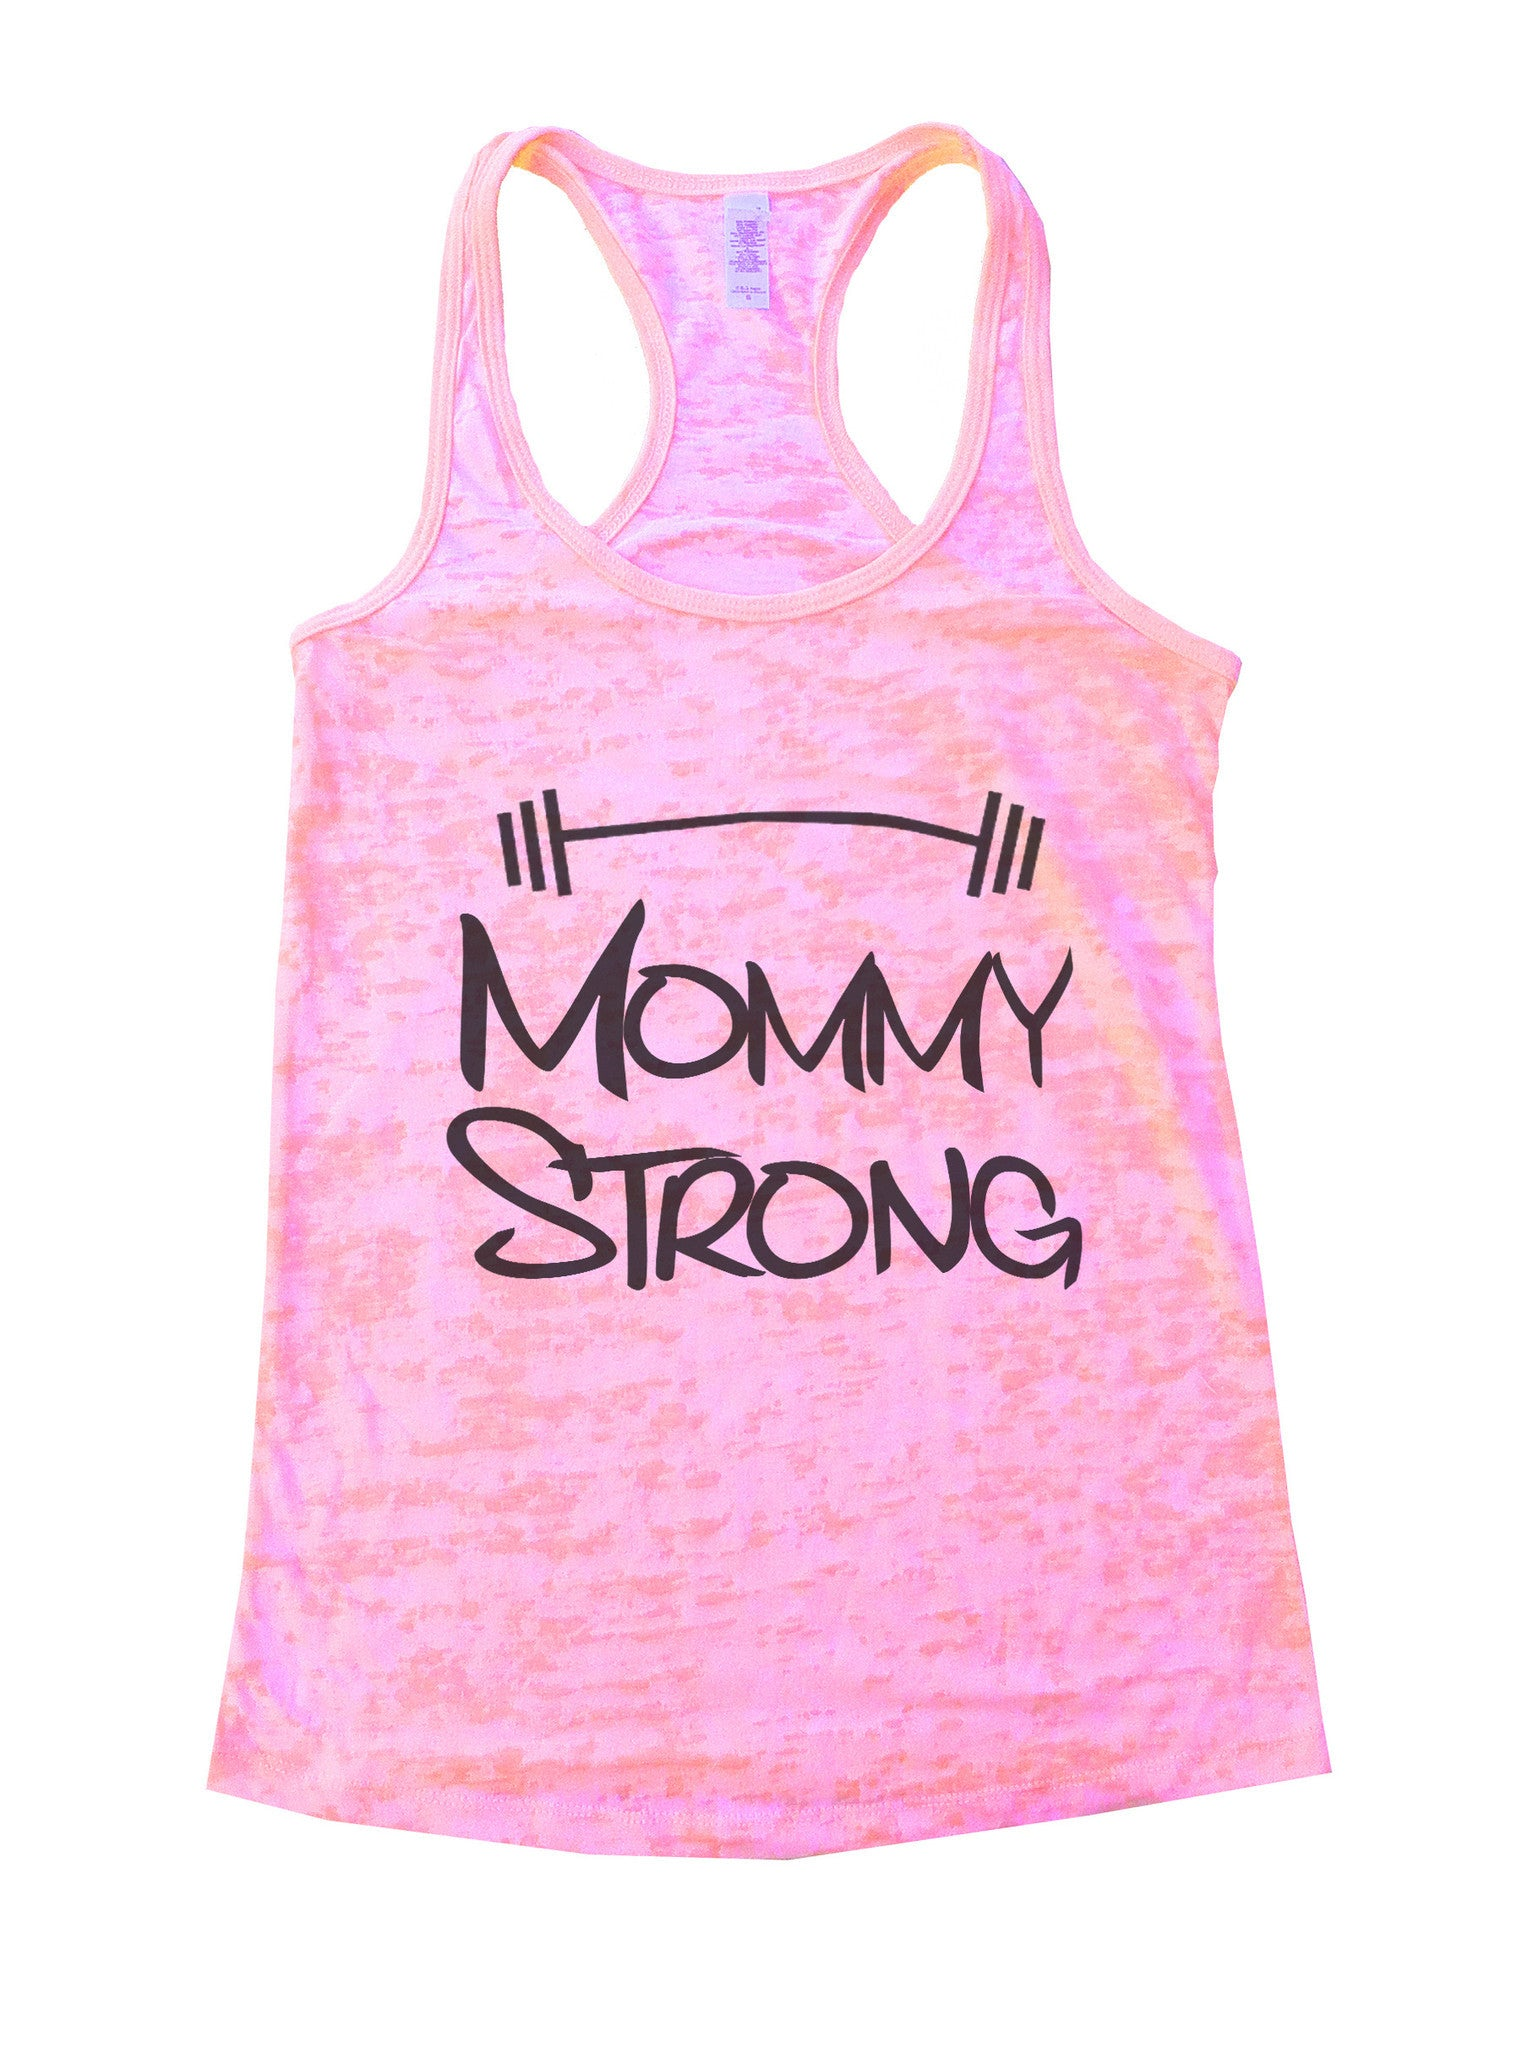 Mommy Strong Mothers Motivational Burnout Tank Top By BurnoutTankTops.com - 515 - Funny Shirts Tank Tops Burnouts and Triblends  - 2